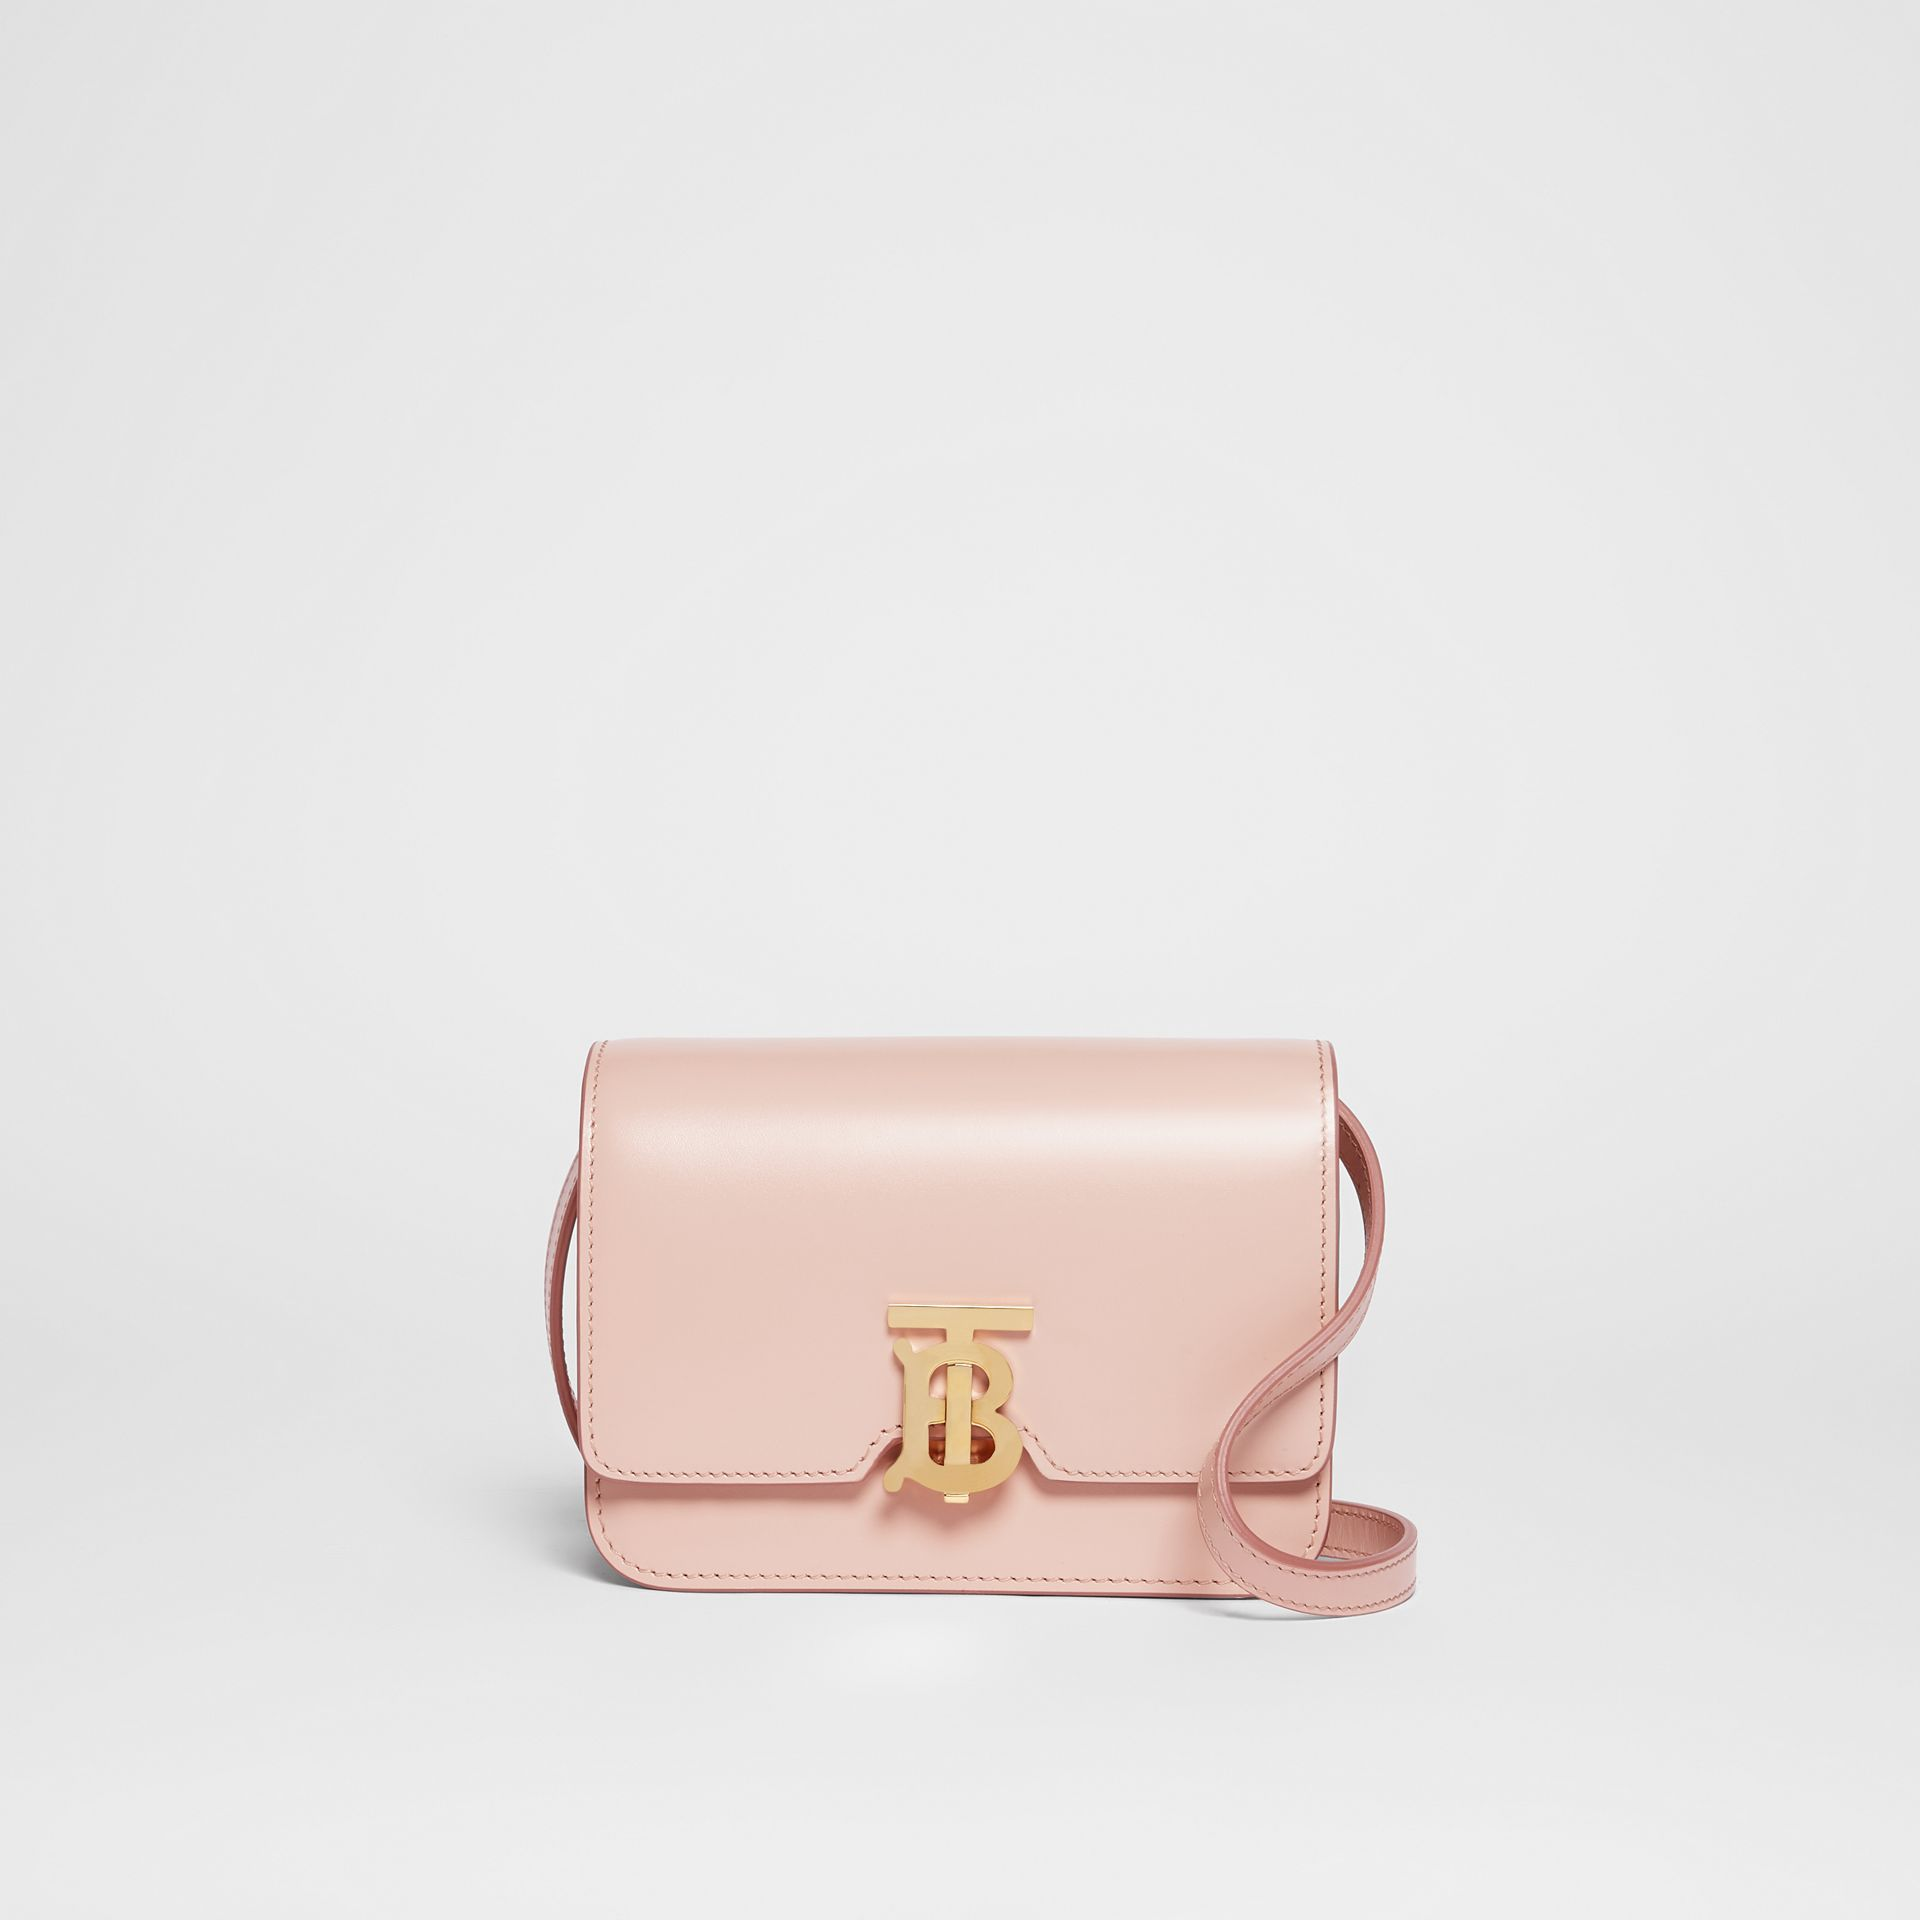 Mini Leather TB Bag in Rose Beige - Women | Burberry United States - gallery image 0